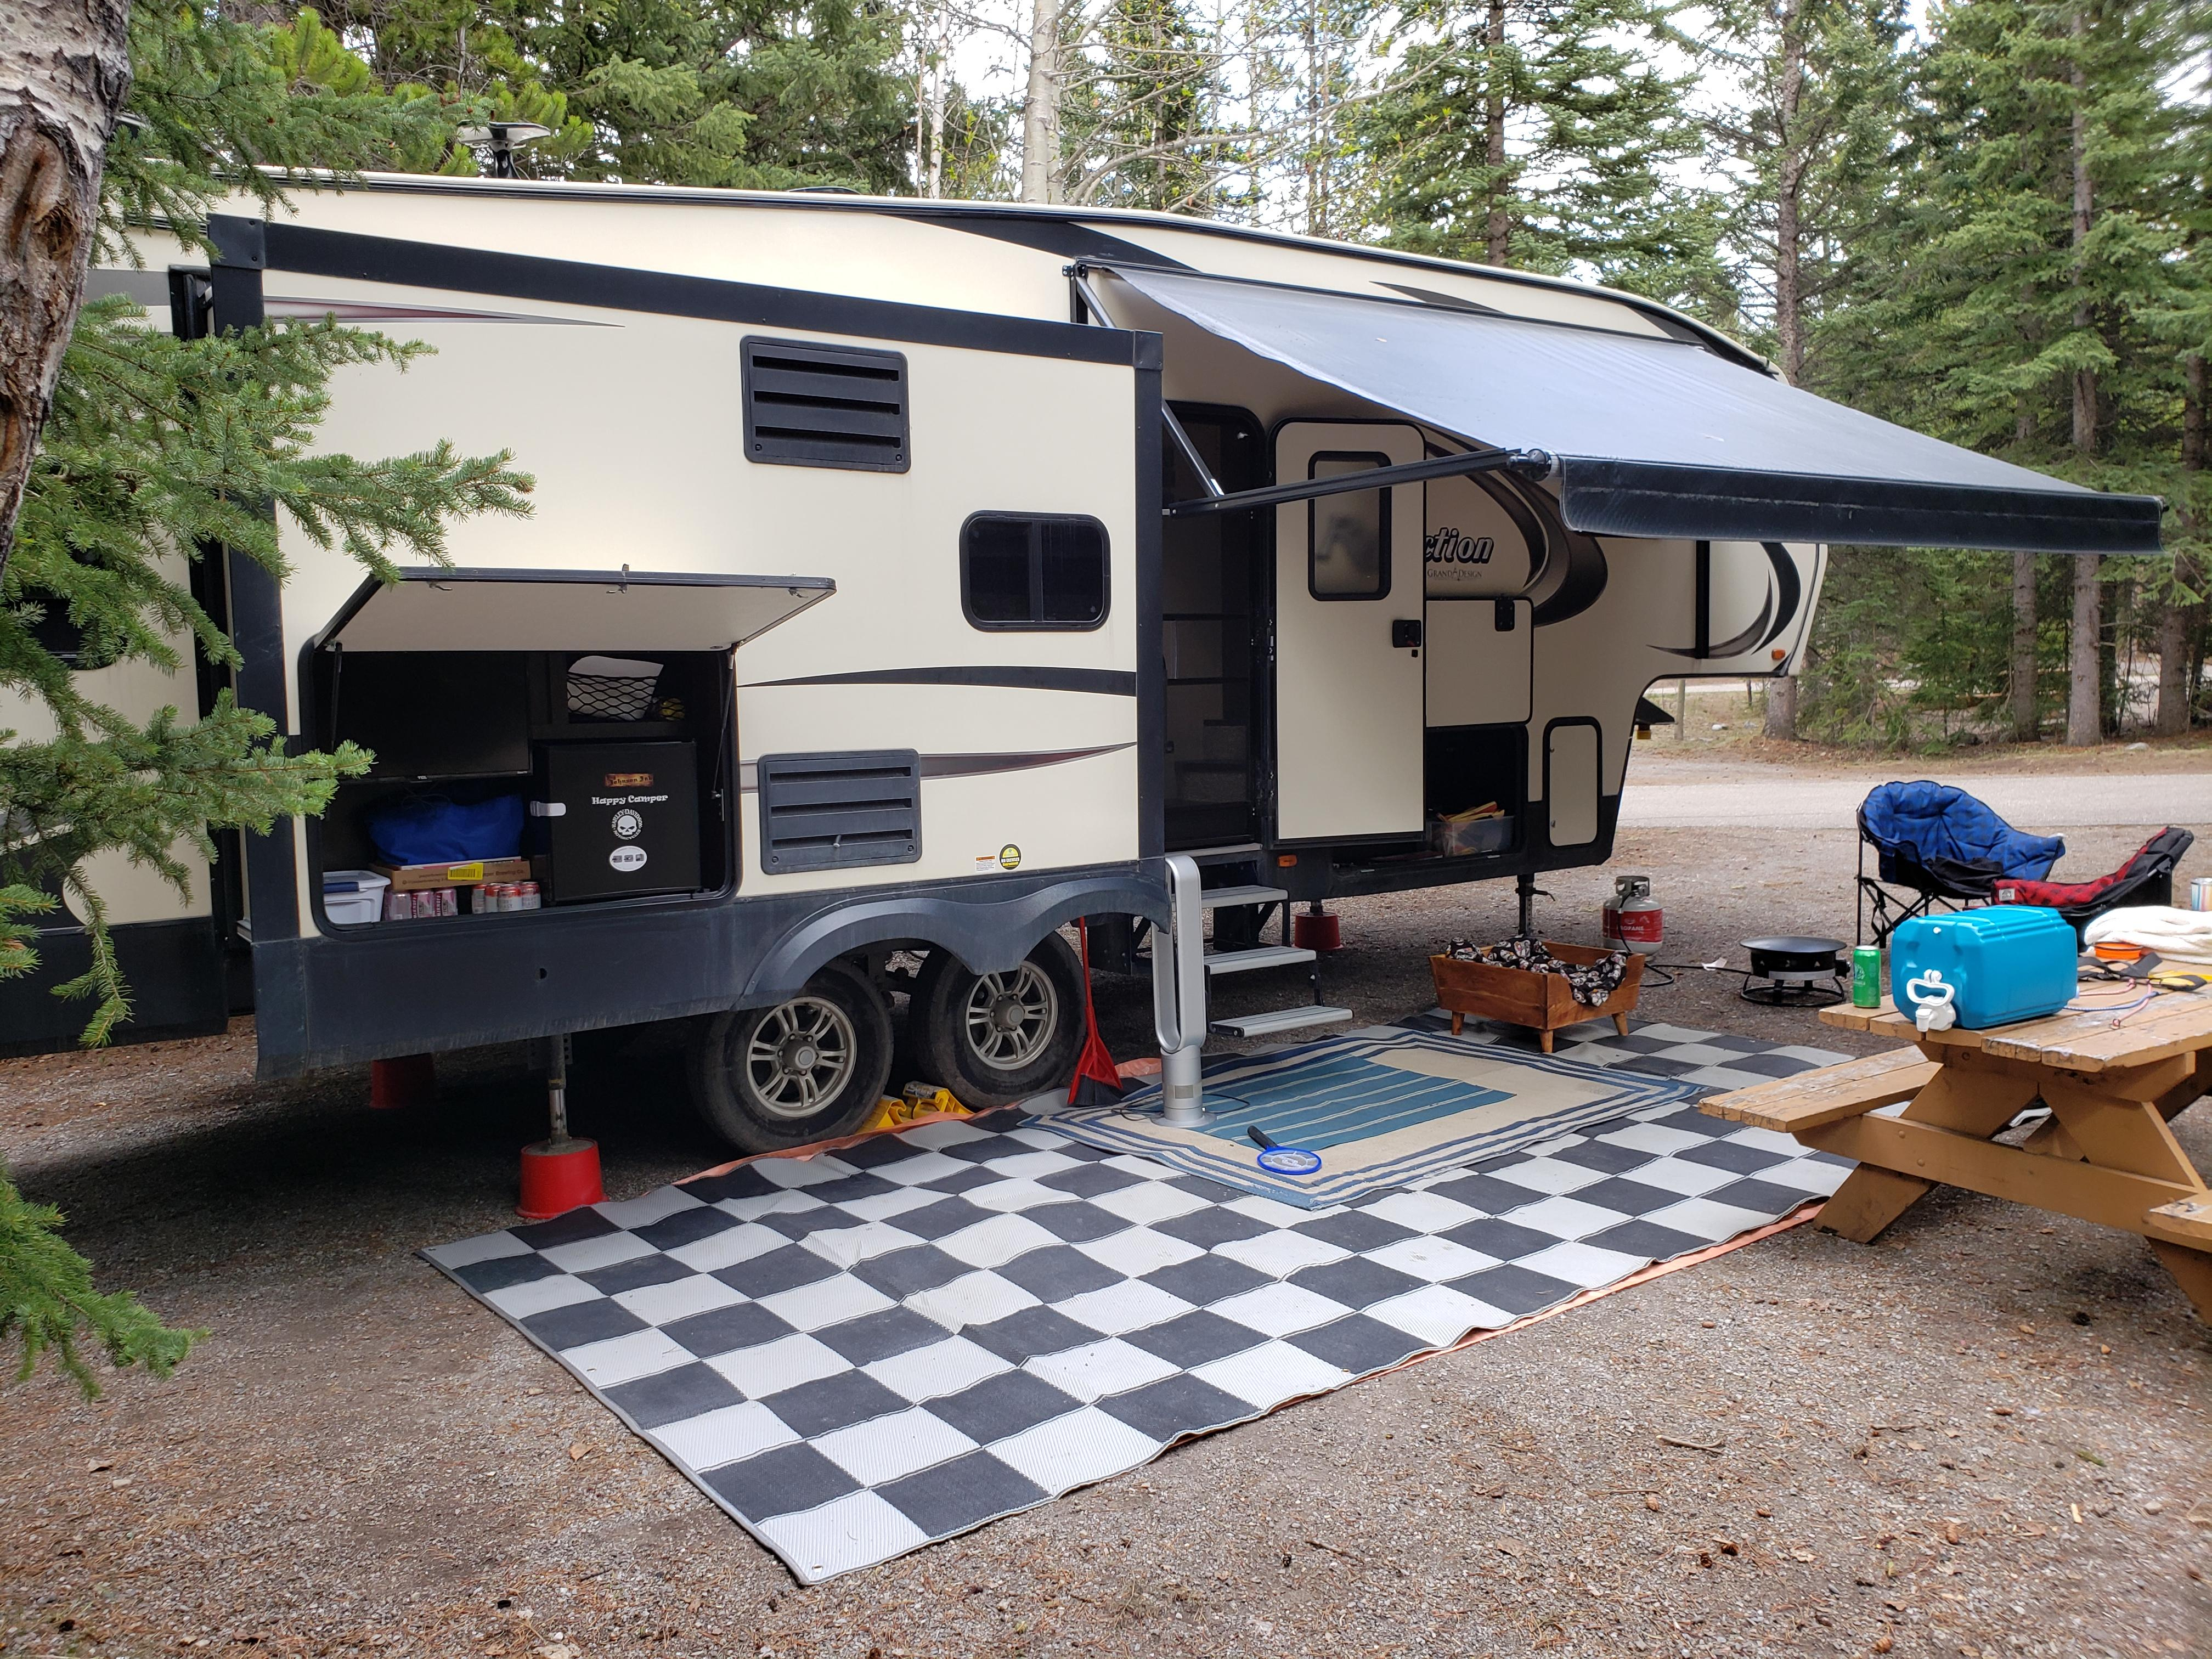 Find the best campgrounds, see campsite photos and read about other camping information in our camping guide. First Time Out This Year Mount Kidd Rv Park In Kananaskis Alberta Canada Gorving